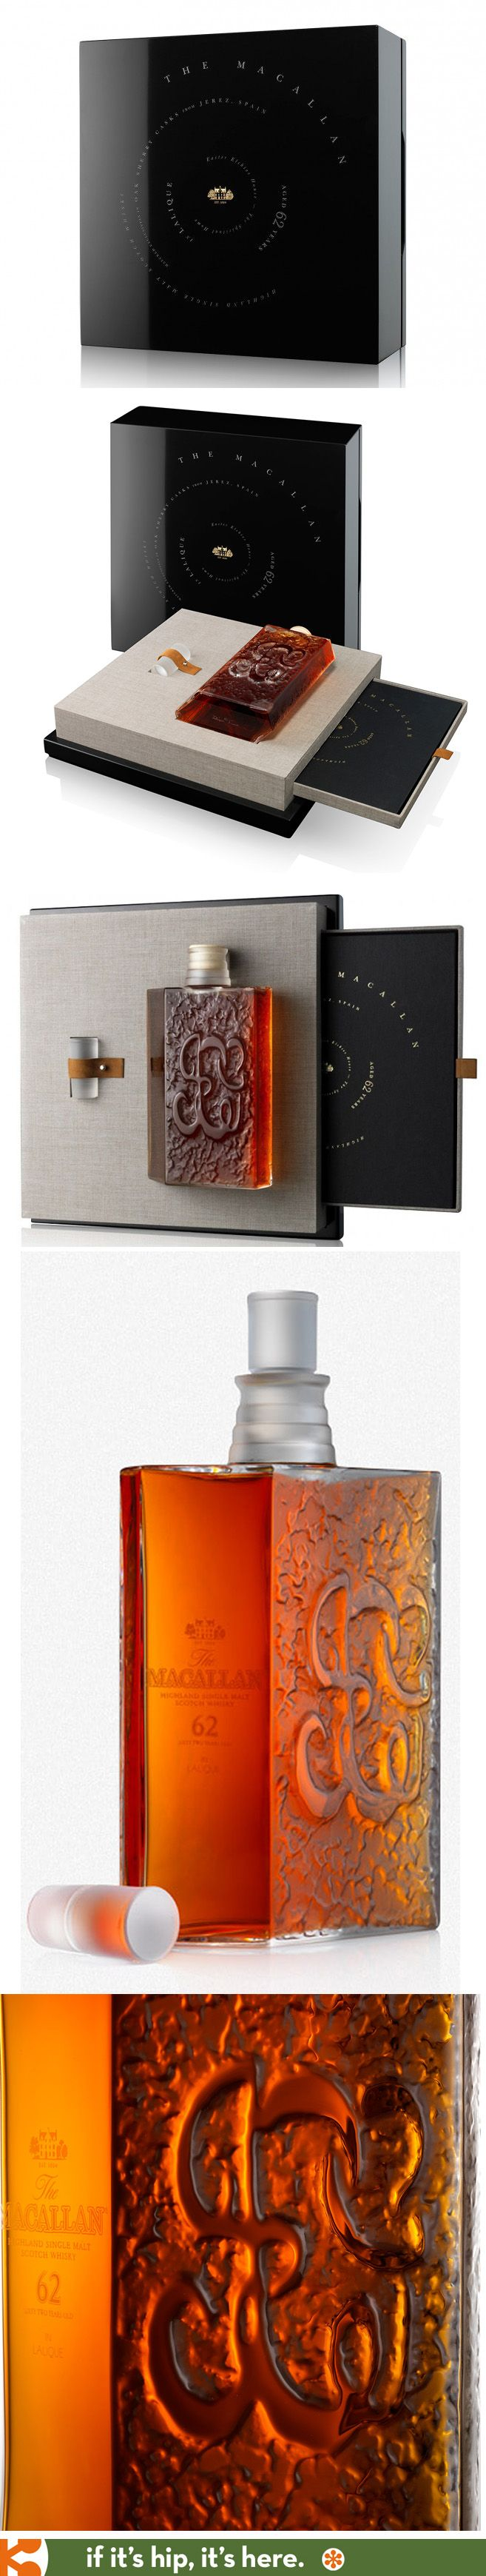 The Macallan Lalique, Aged 62 Years. Stunning bottle, stopper, box and presentation.